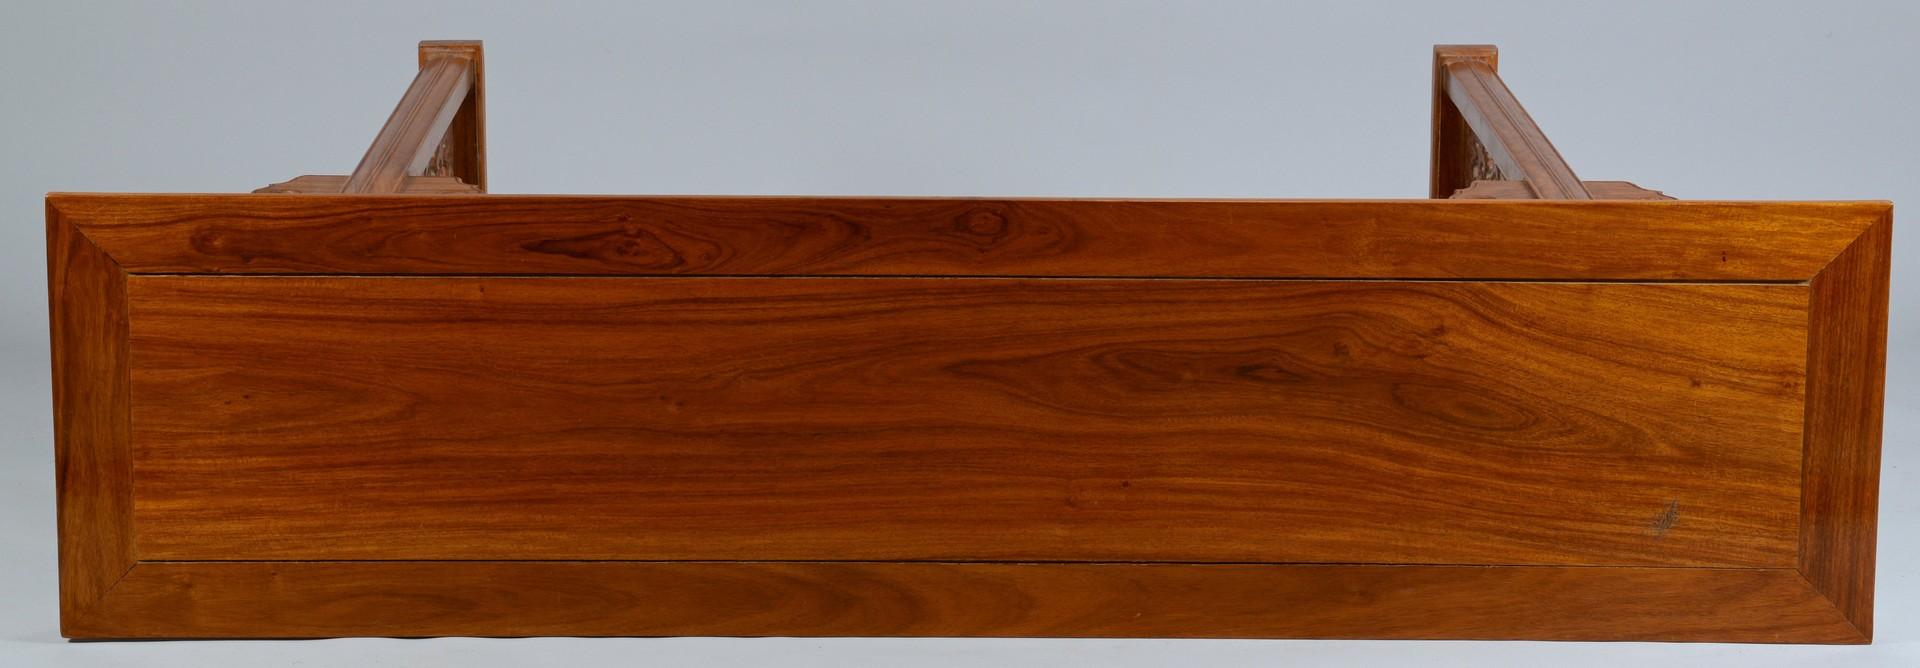 Lot 3383215: Chinese Altar Table